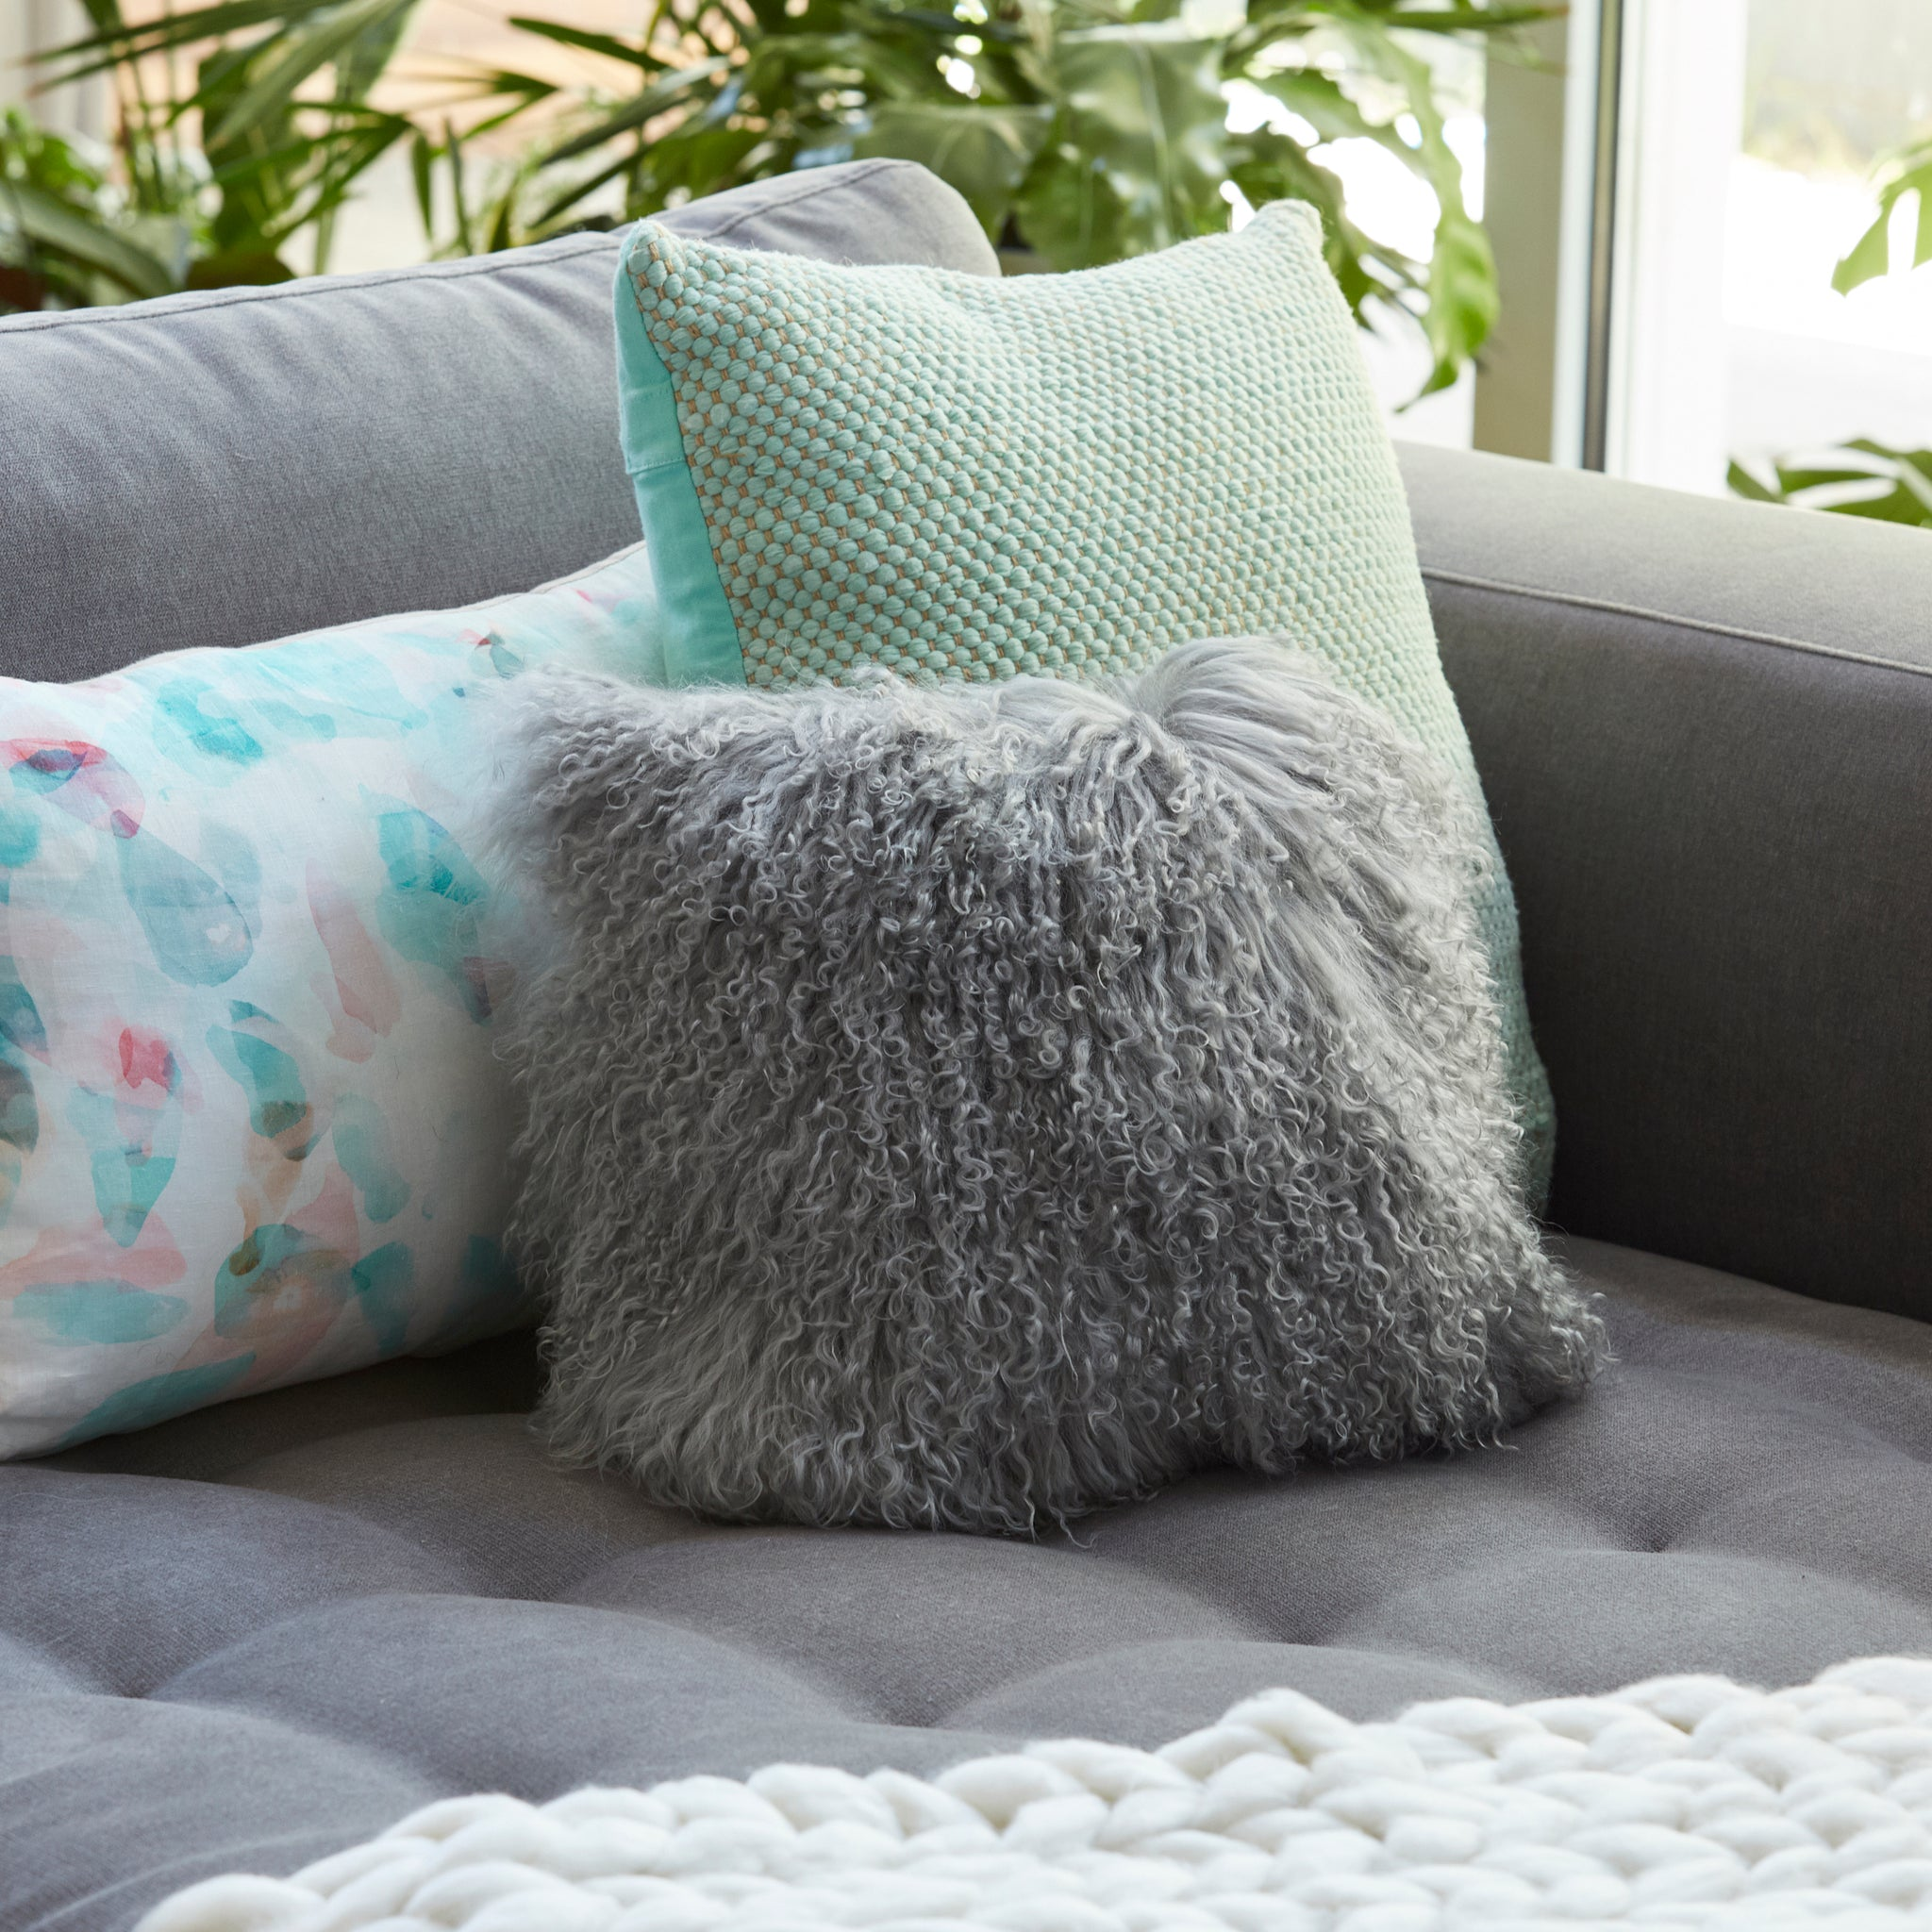 Mongolian Sheepskin cushion - Square - GREY